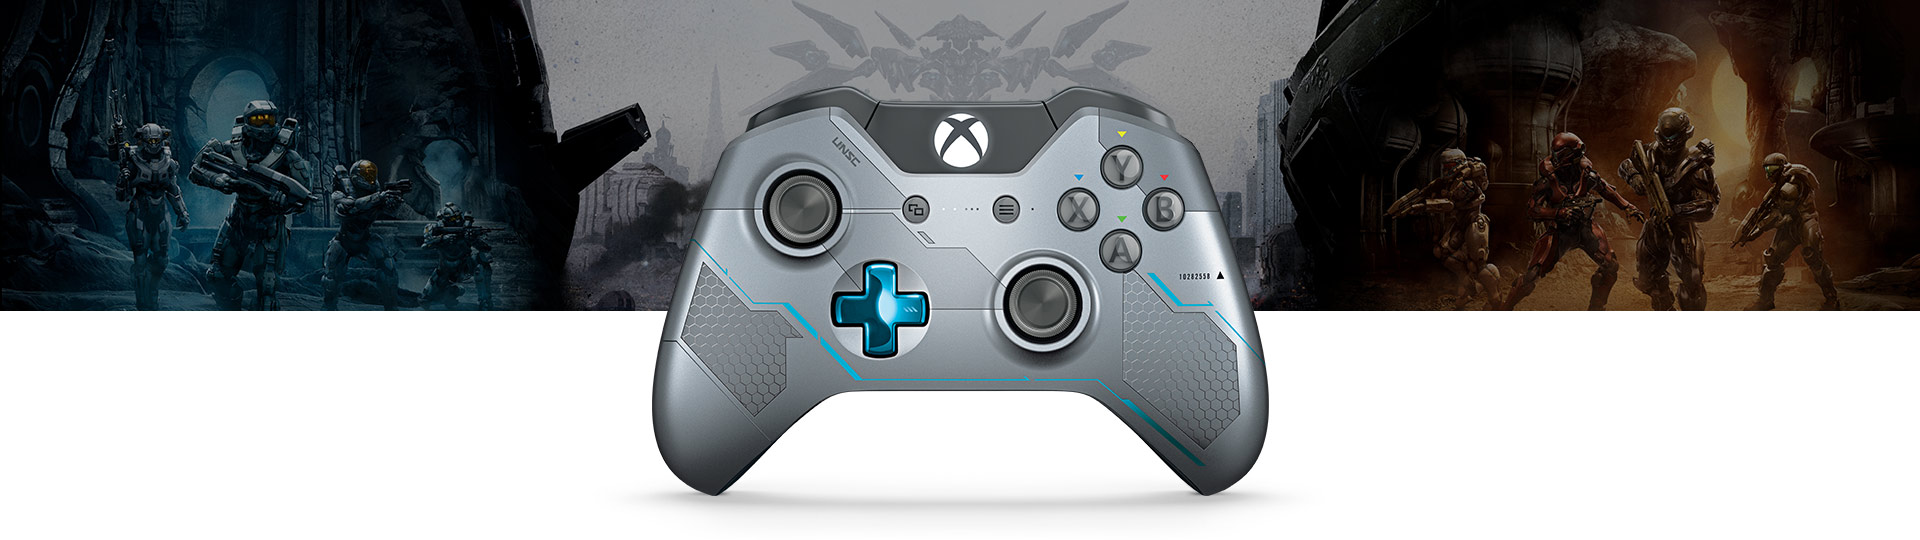 Manette sans fil Xbox One Halo 5 Guardians